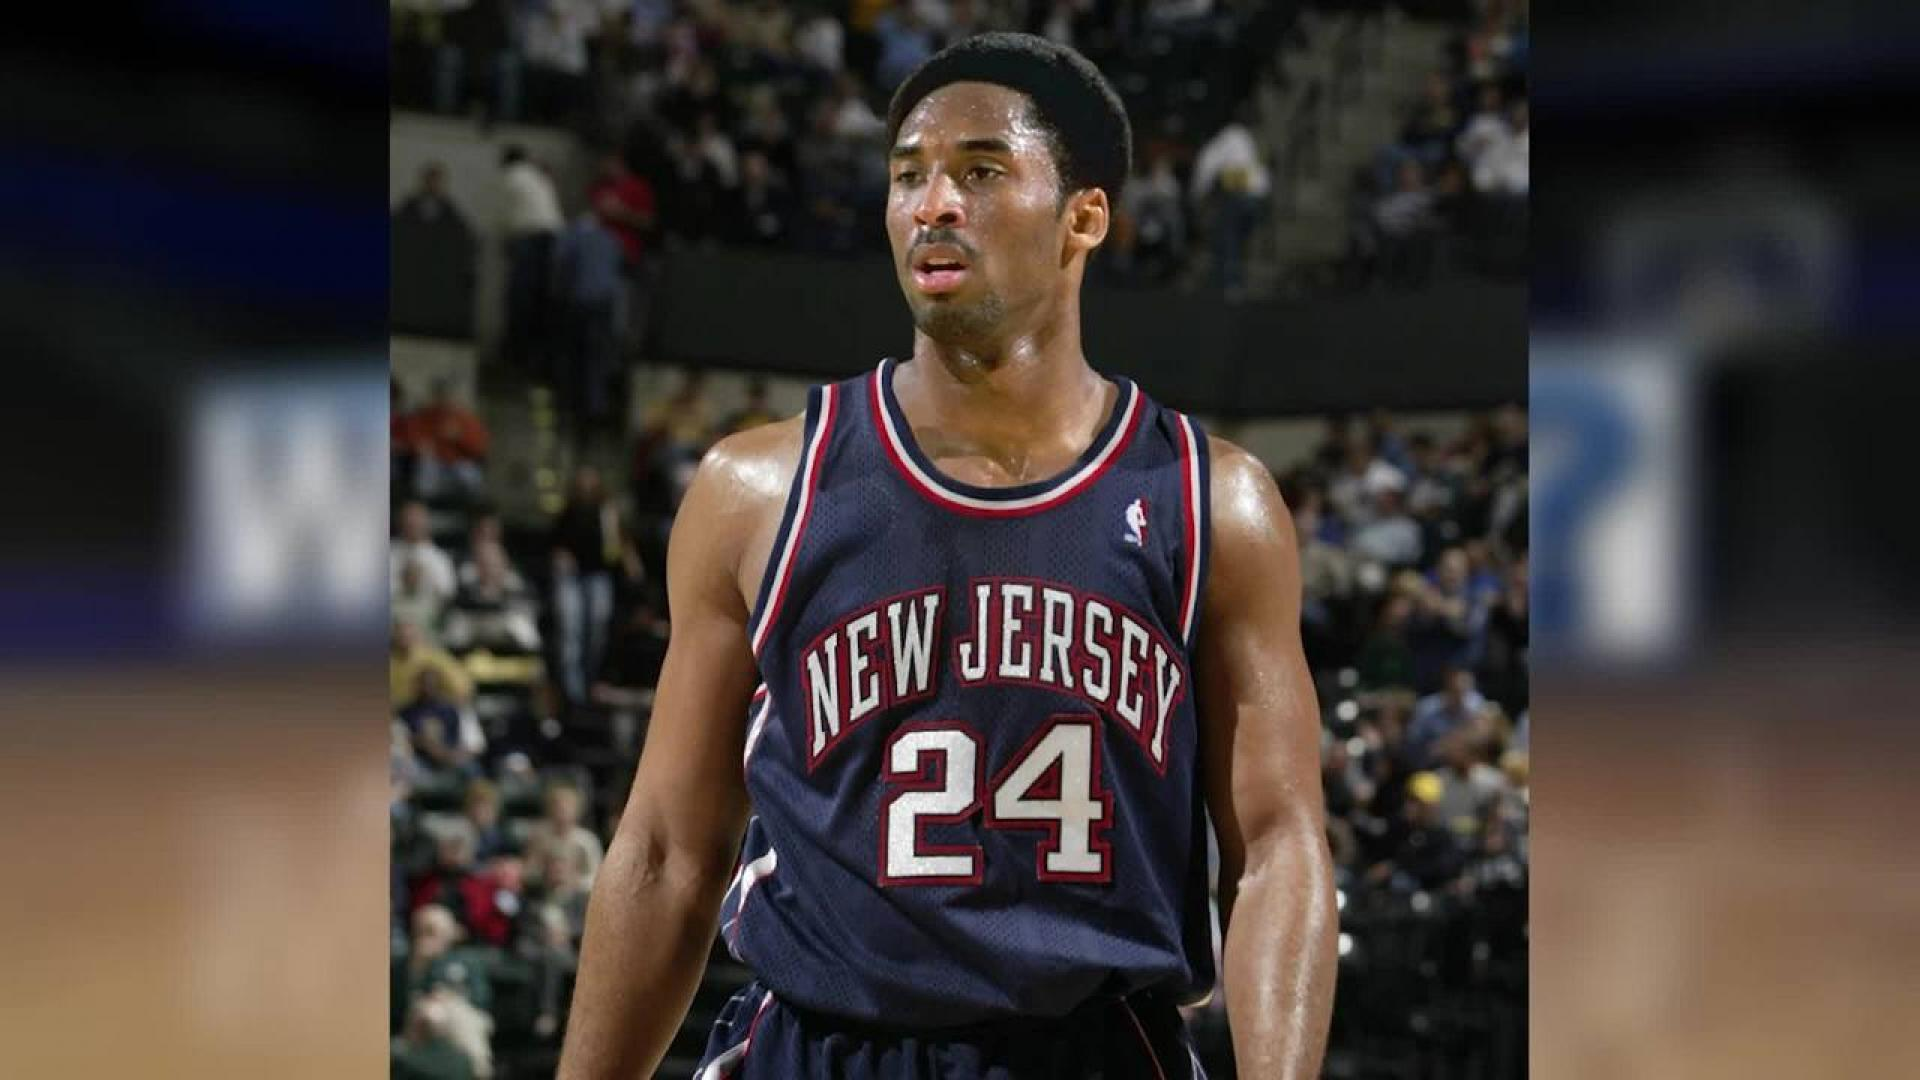 finest selection 42483 9a3a0 What If: Kobe Bryant And 1996 Draft | NBA.com